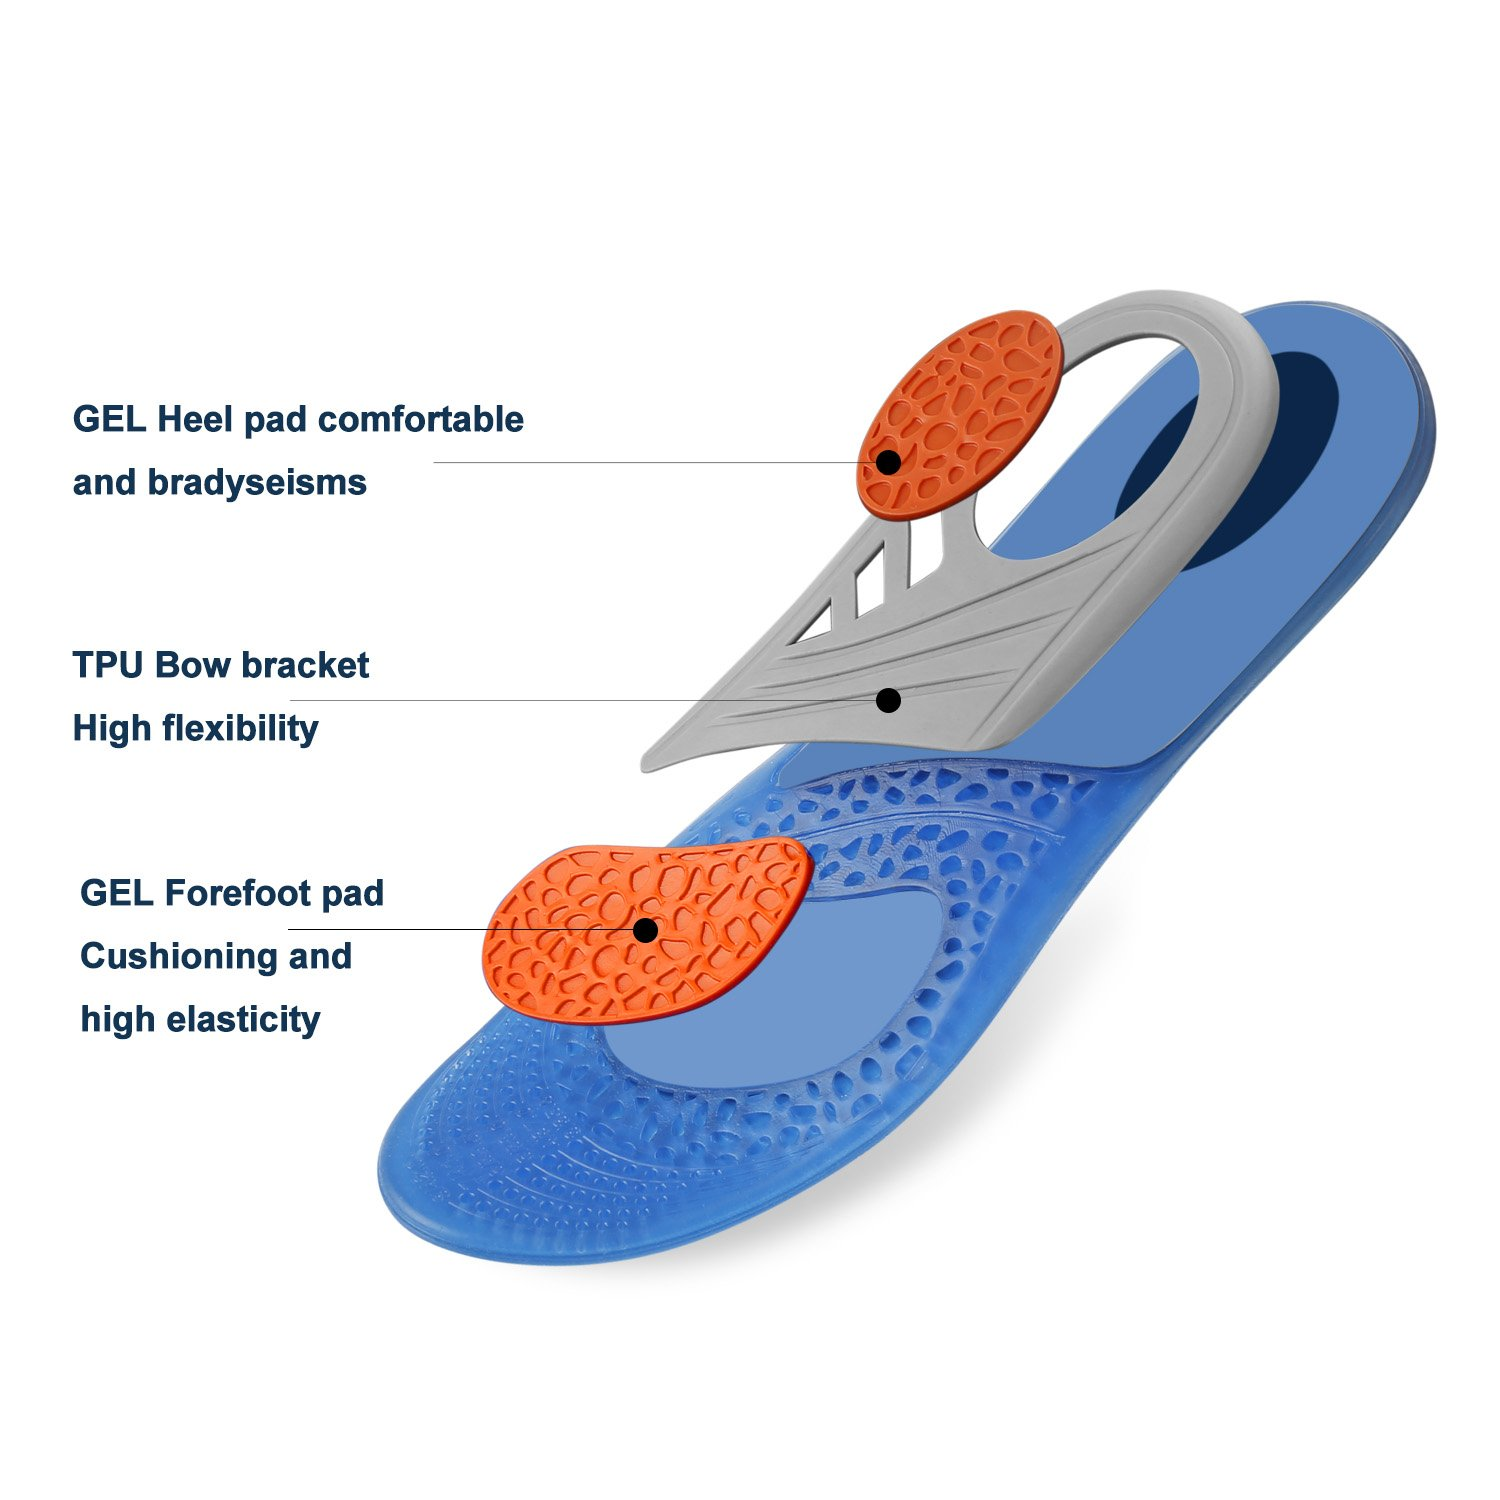 SLDHR Soft Silicone Comfort Shock Absorber Insoles Athlete Full Length Comfort Neutral Arch Replacement Shoe Insole ((Unisex-adult7 US-14 US)